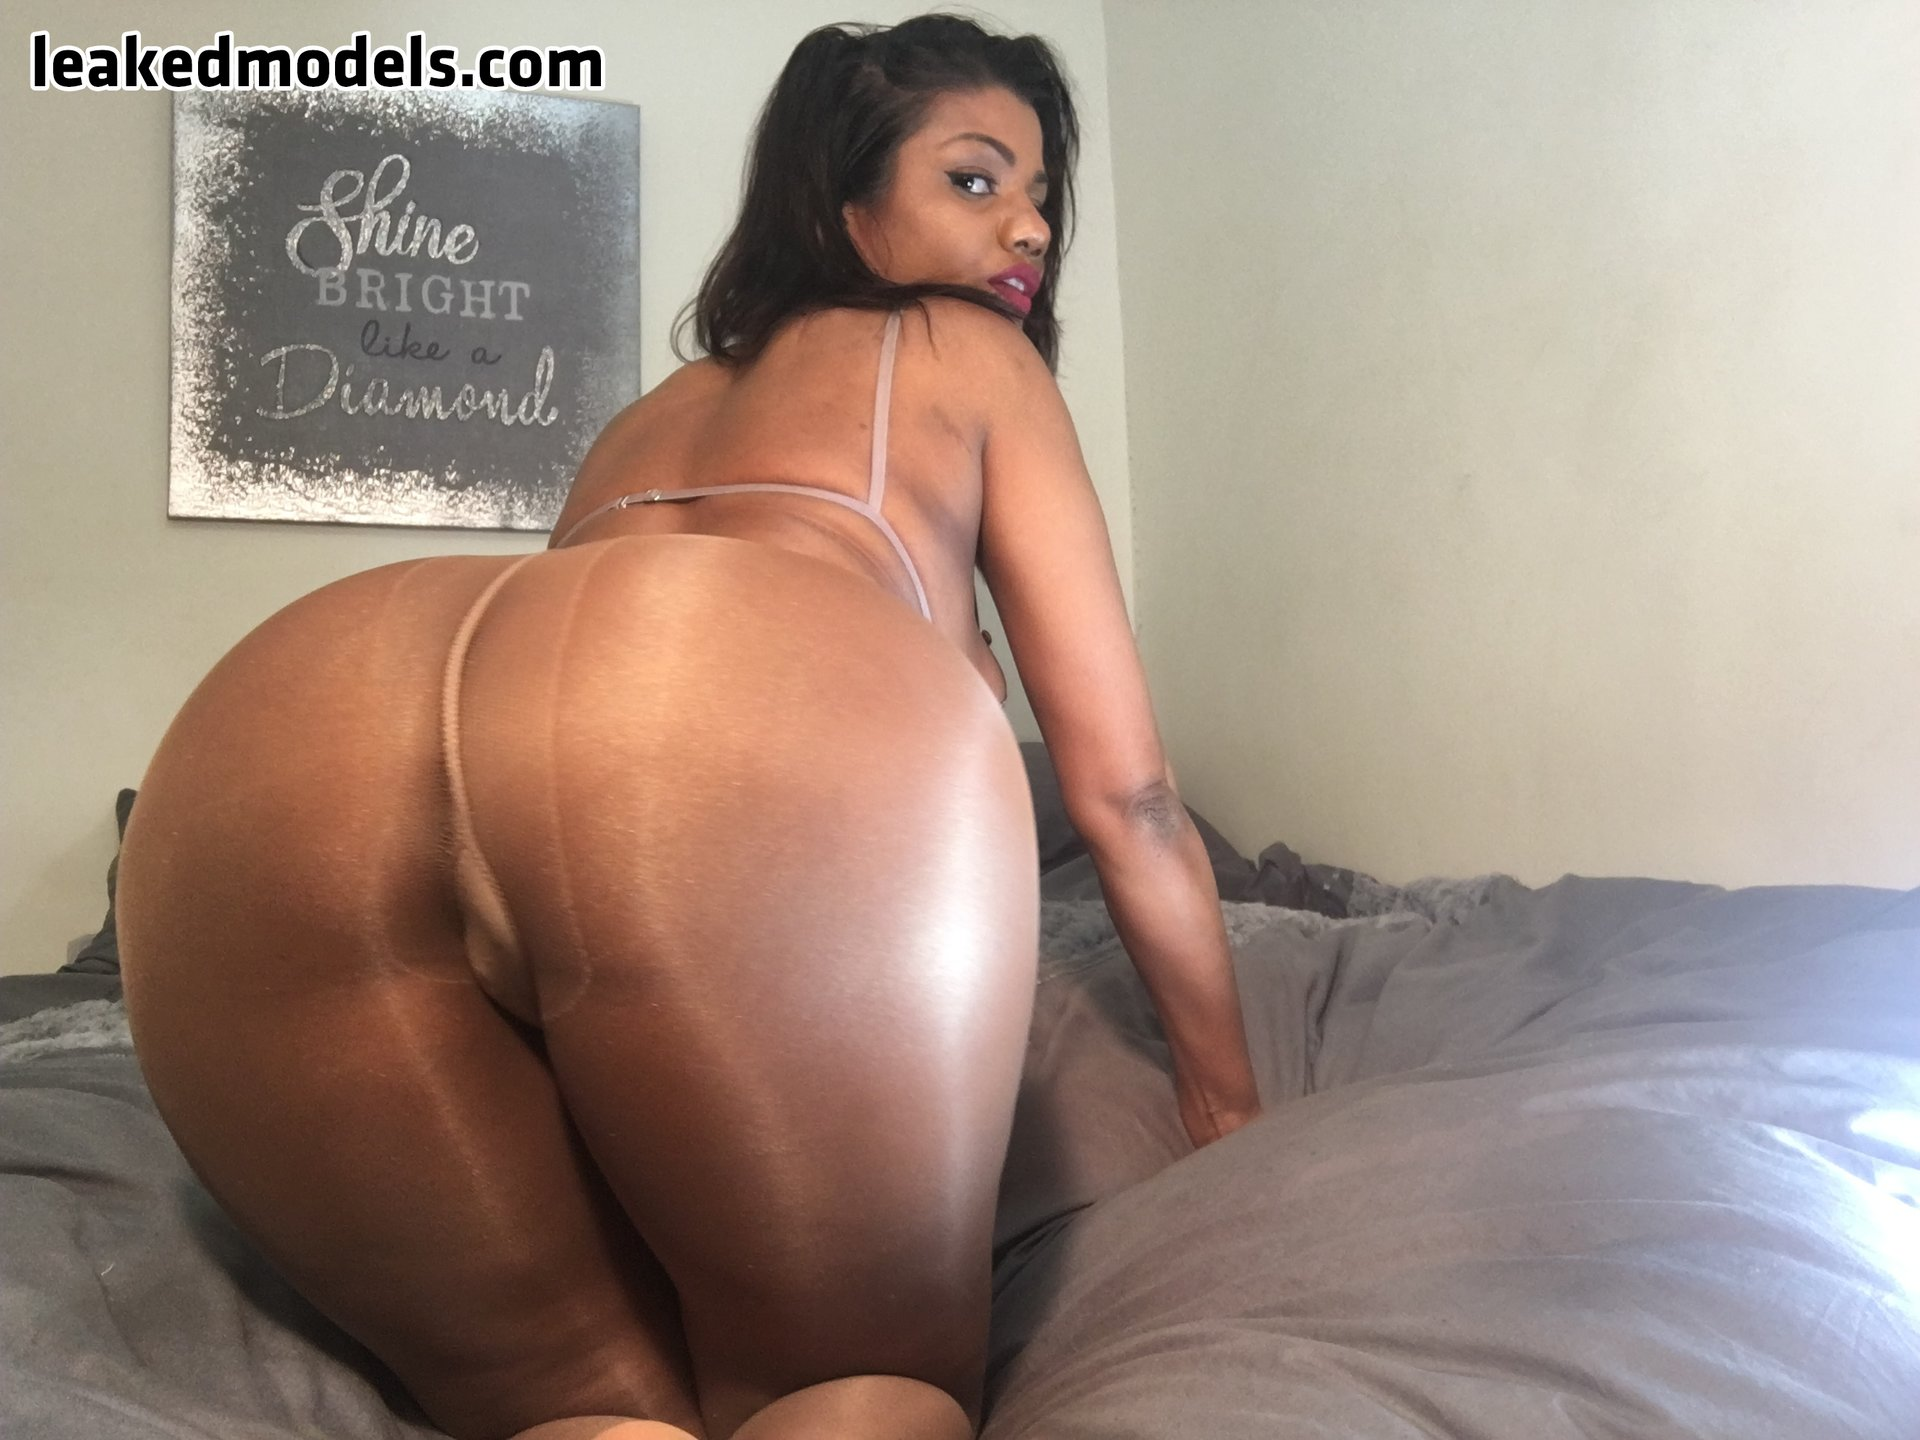 Sophia lares OnlyFans Leaks (96 Photos and 9 Videos)